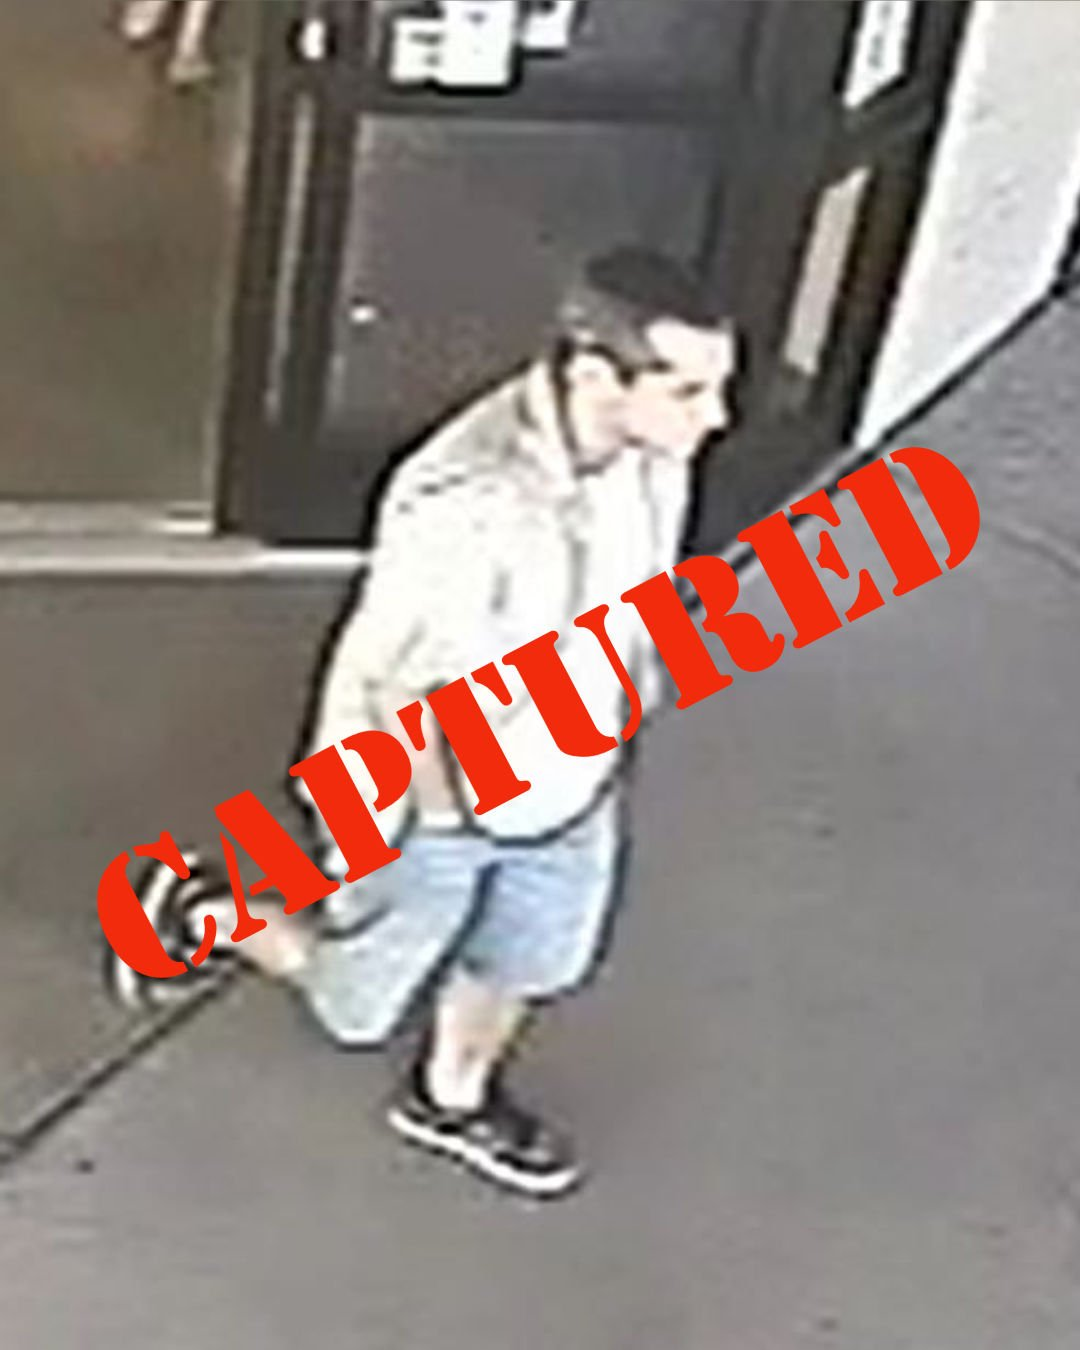 Goodwill suspect picture